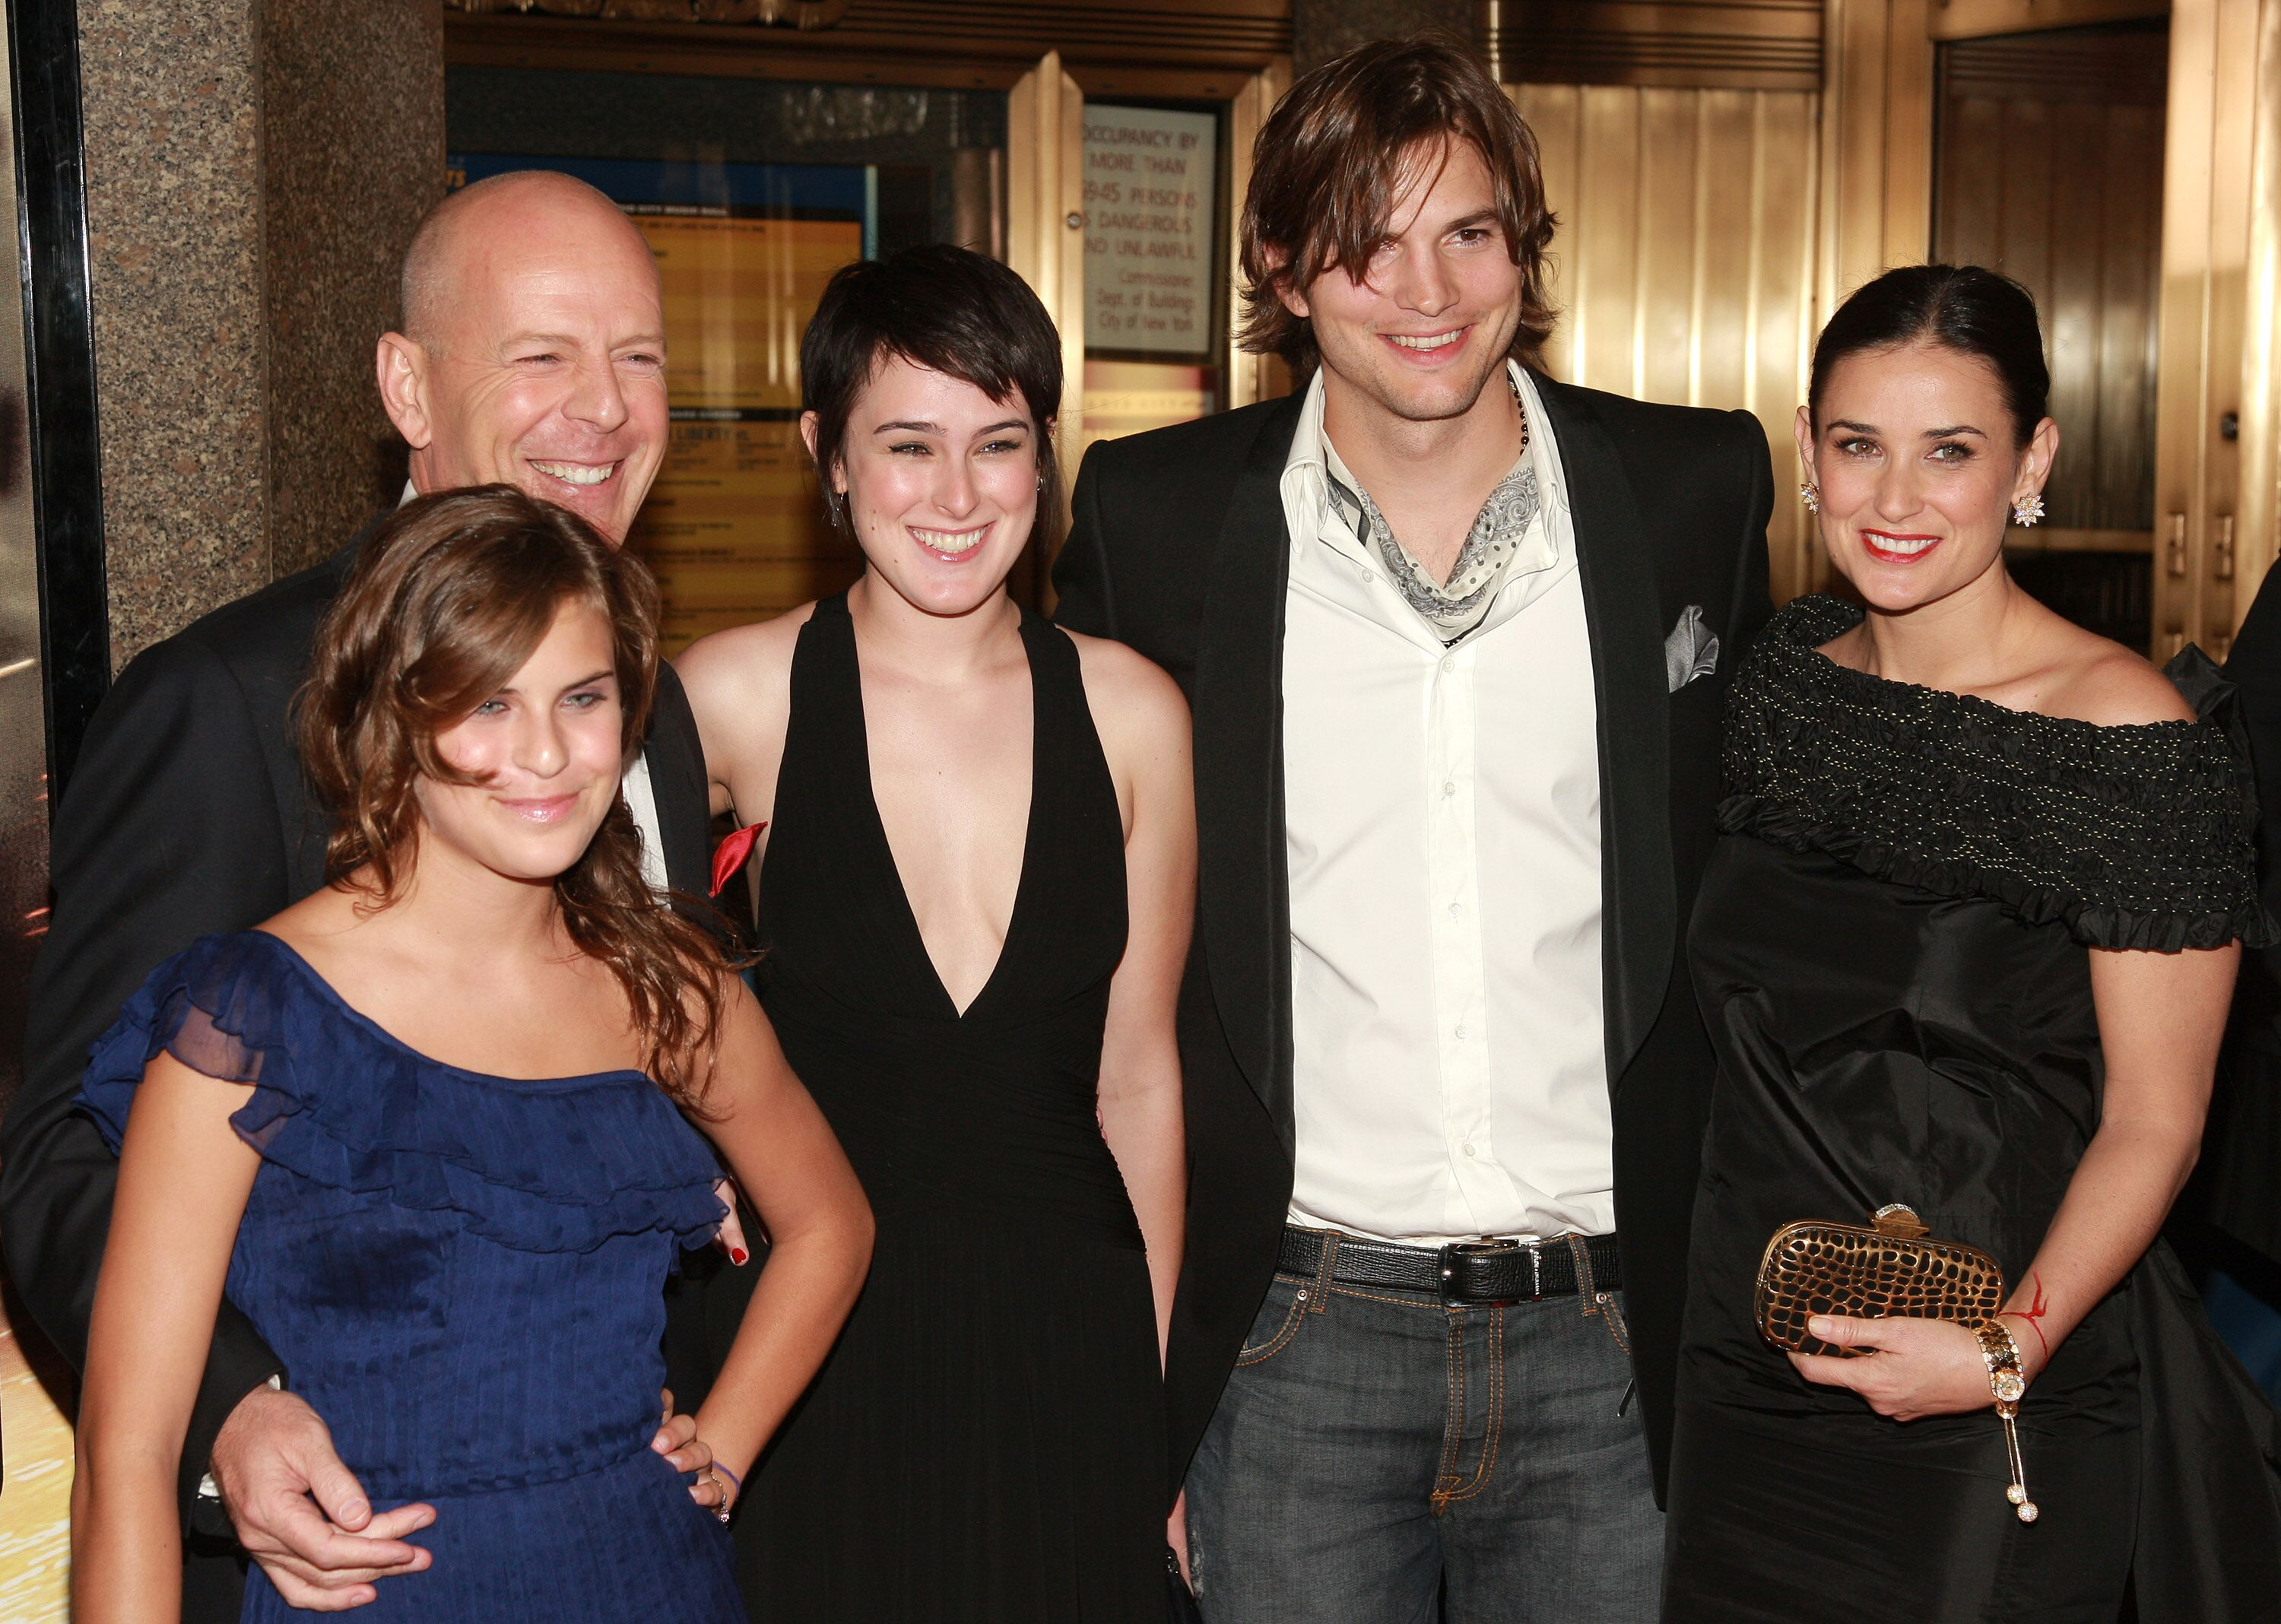 Ashton Kutcher, Demi Moore, and Bruce Willis pose with Rumer and Tallulah Willis at the premiere of Live Free Or Die Hard on June 22, 2007, in New York City   Photo: Evan Agostini/Getty Images